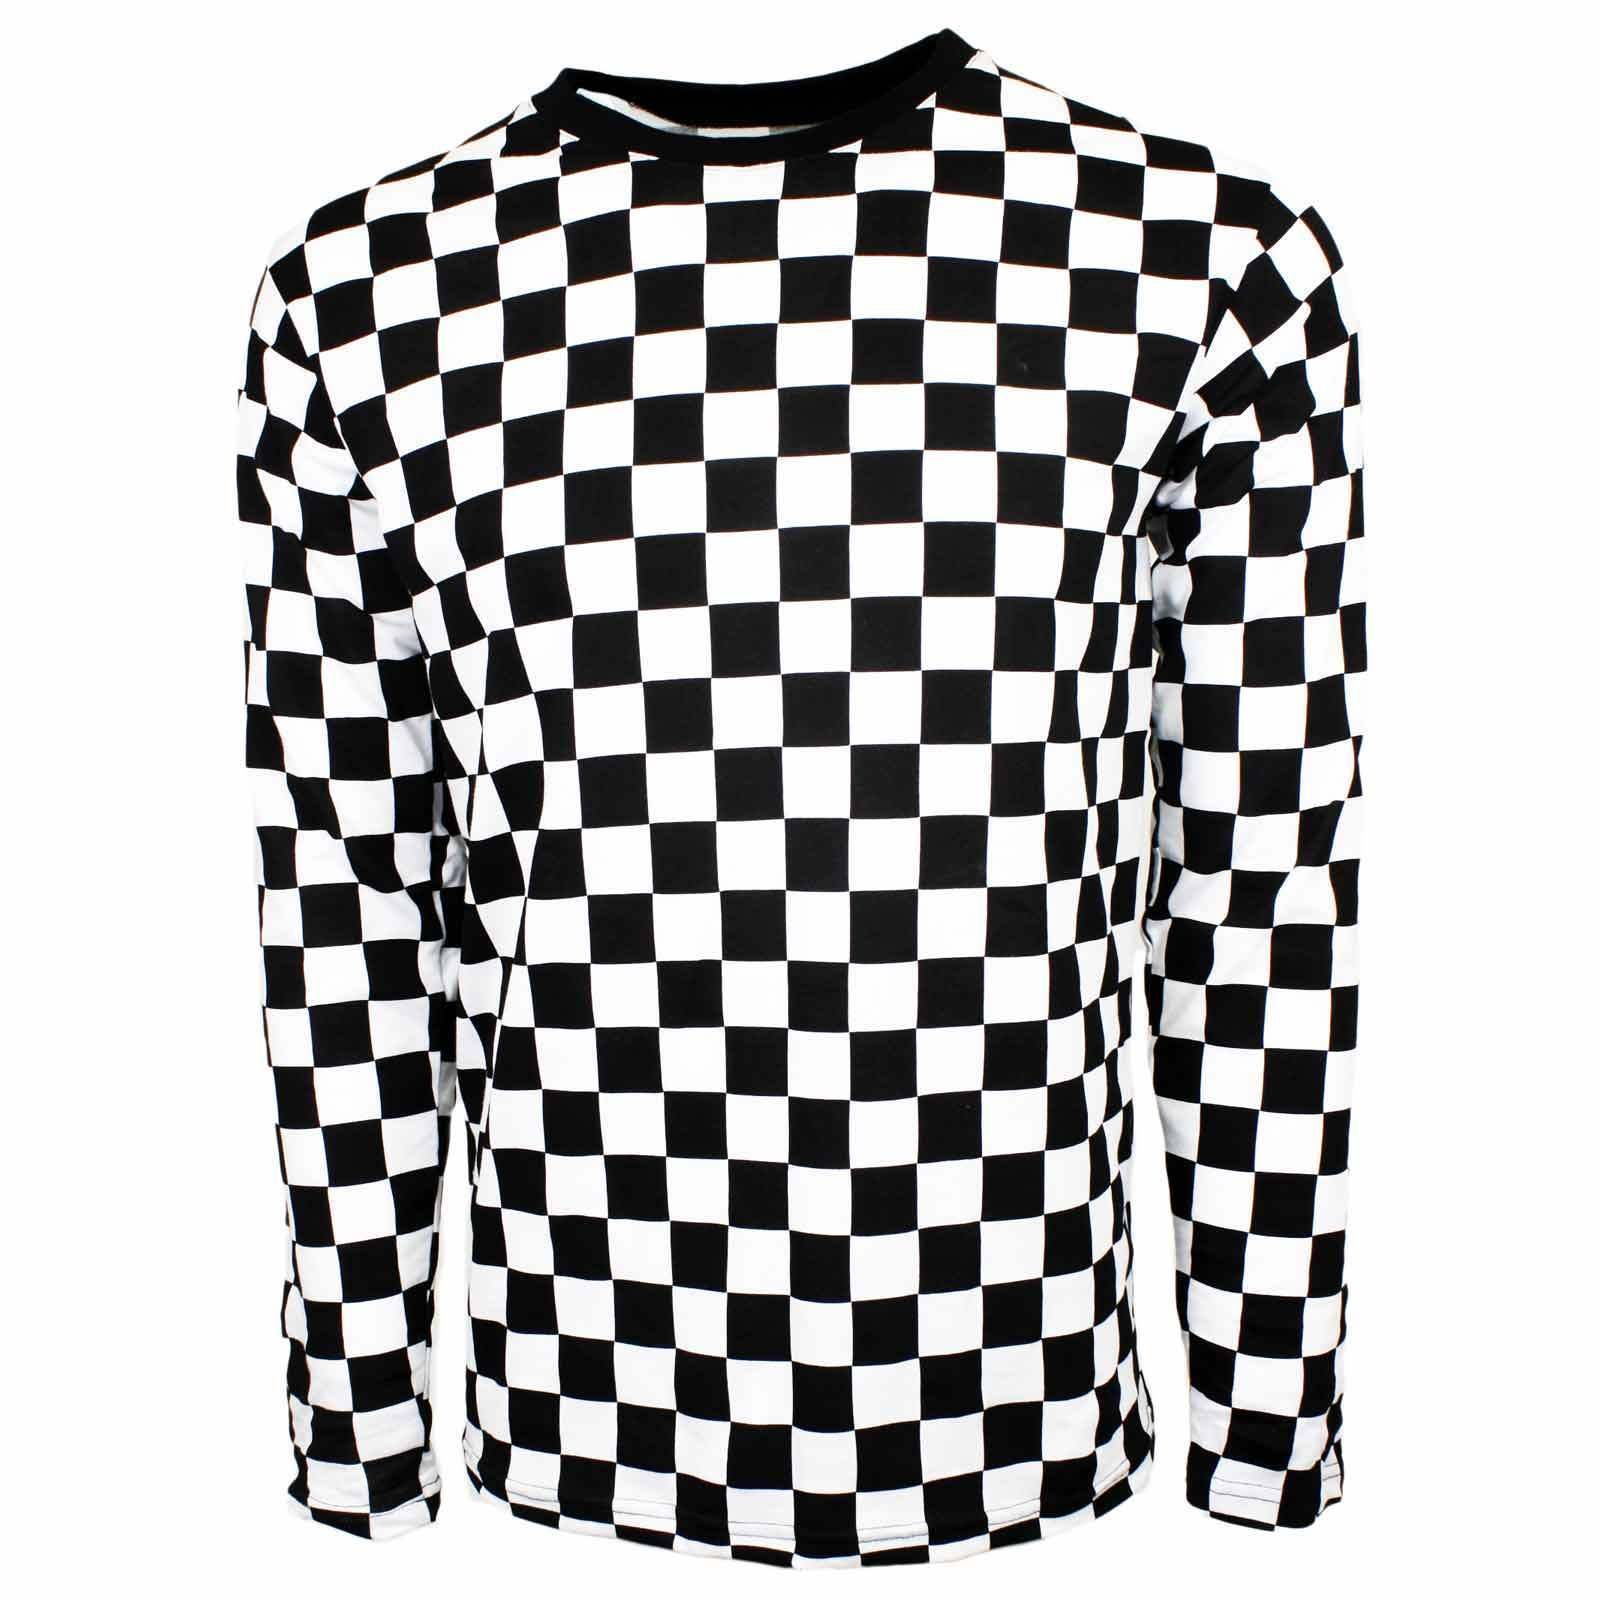 845cc4da1d00 Men's Rad 80's Long Sleeve Punk Checkered Shirt Skater Black White S M L ...